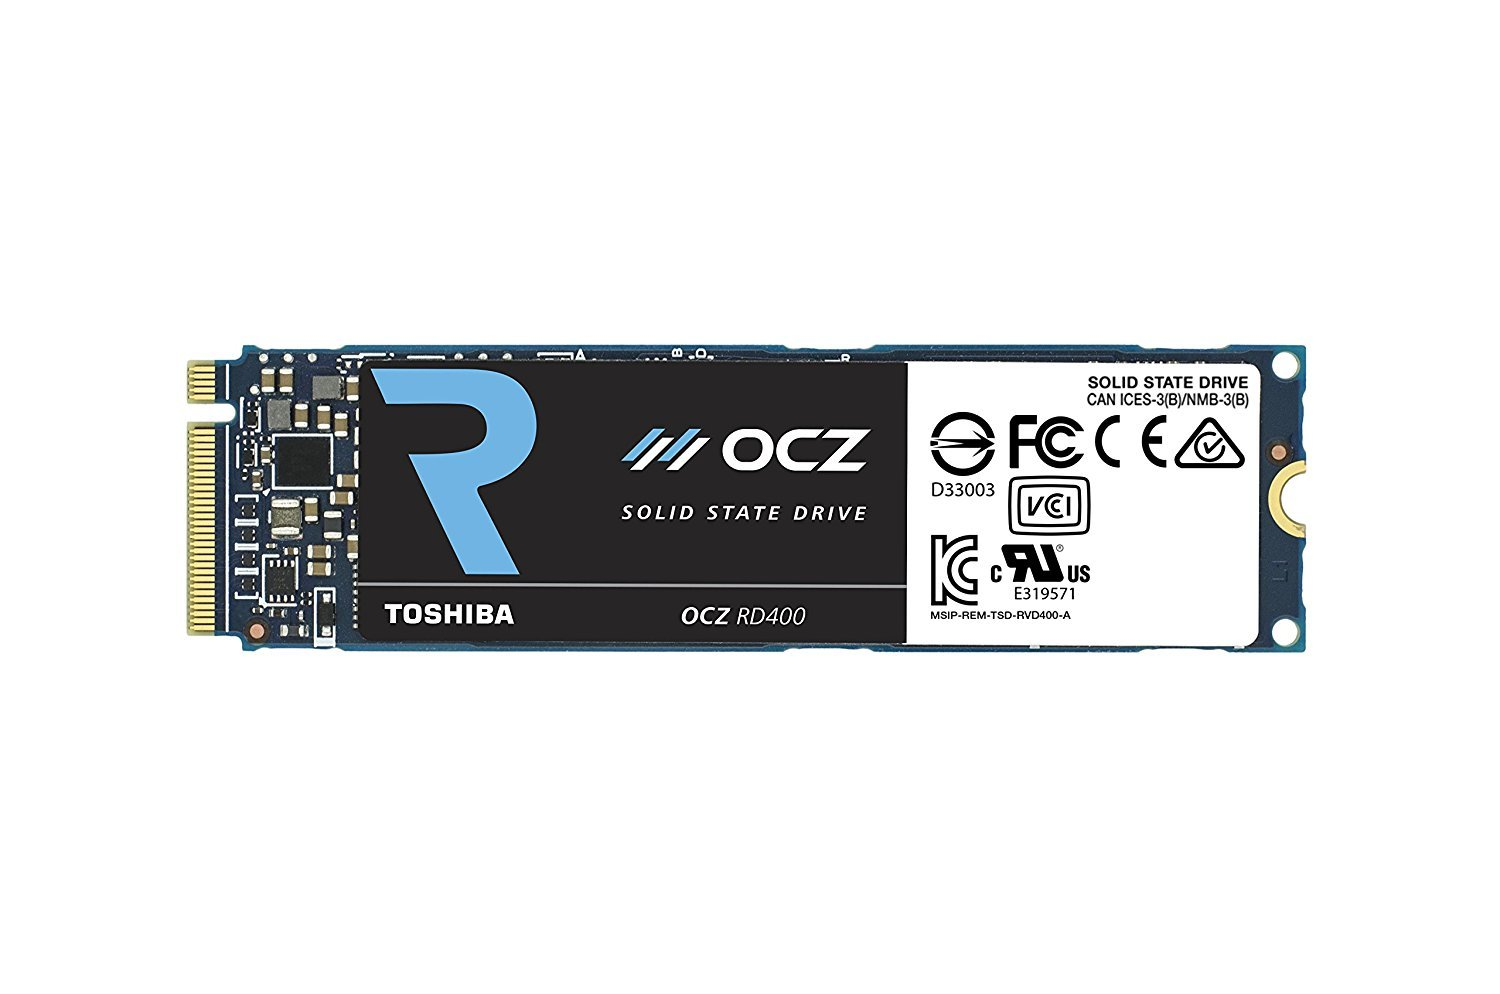 Toshiba Ocz Rd400 256gb M2 2280 Ssd 17999 Asus Bluray Writer Internal Bw 16d1ht Add Review For